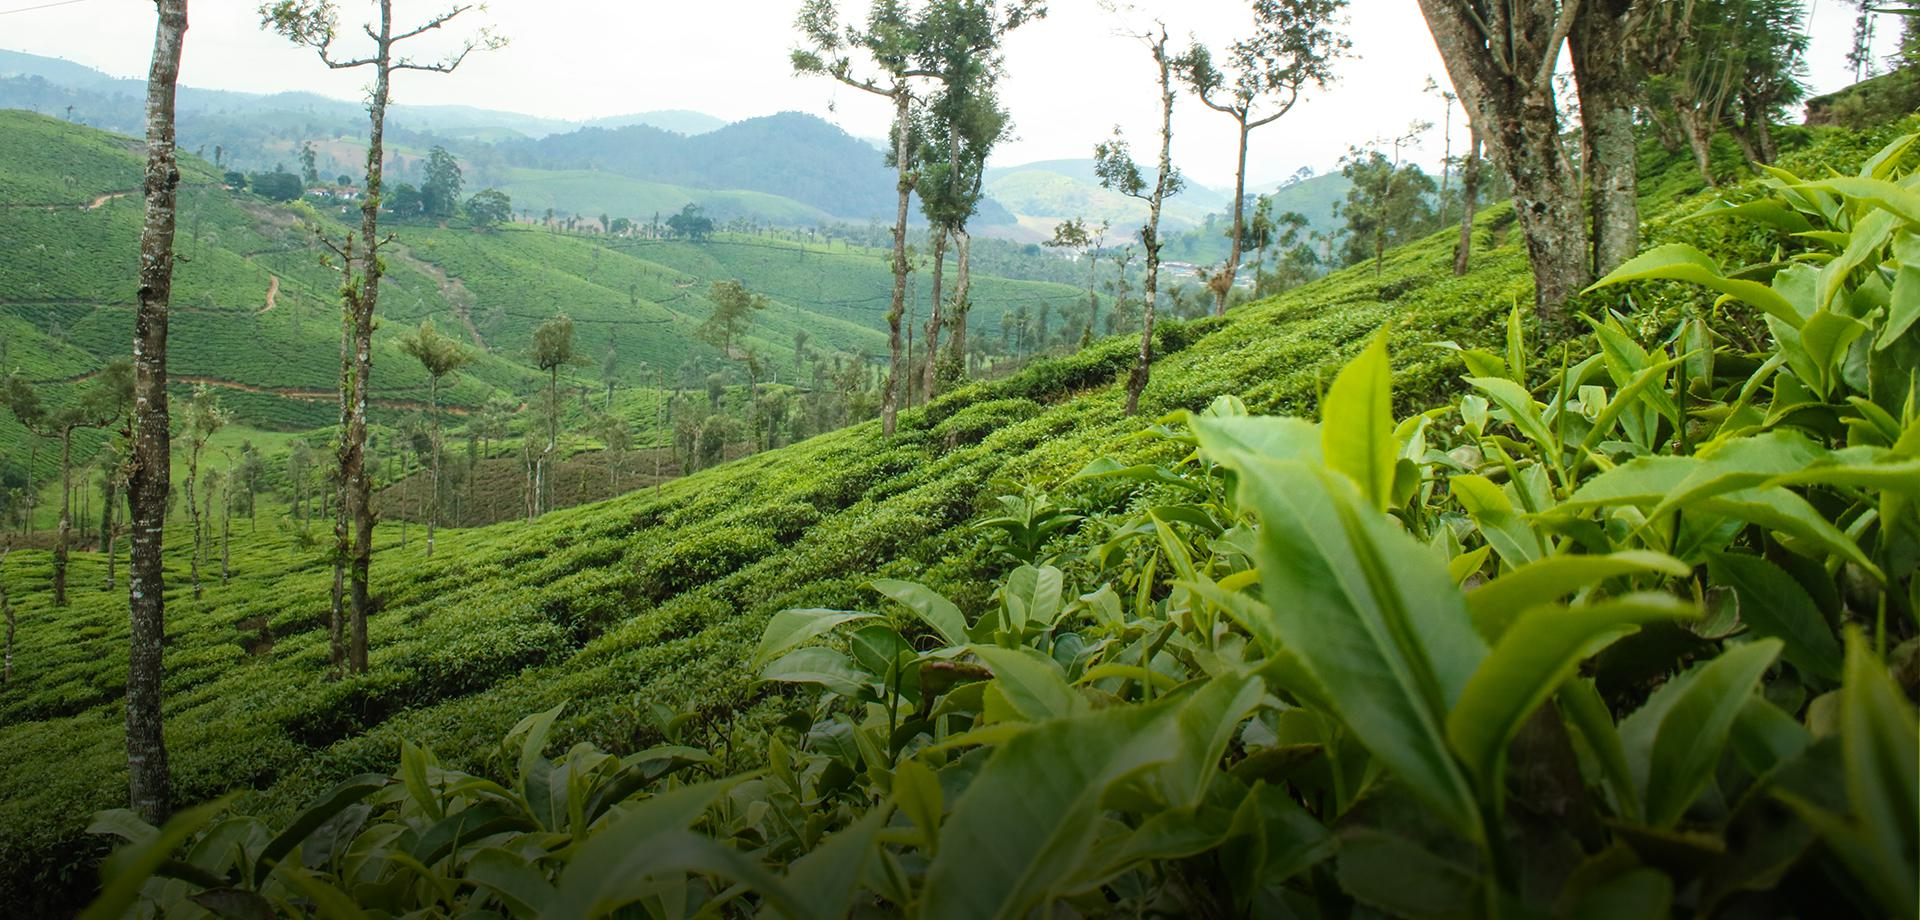 Circled in the mountains, a bowl of tea brews  - Tata Coffee